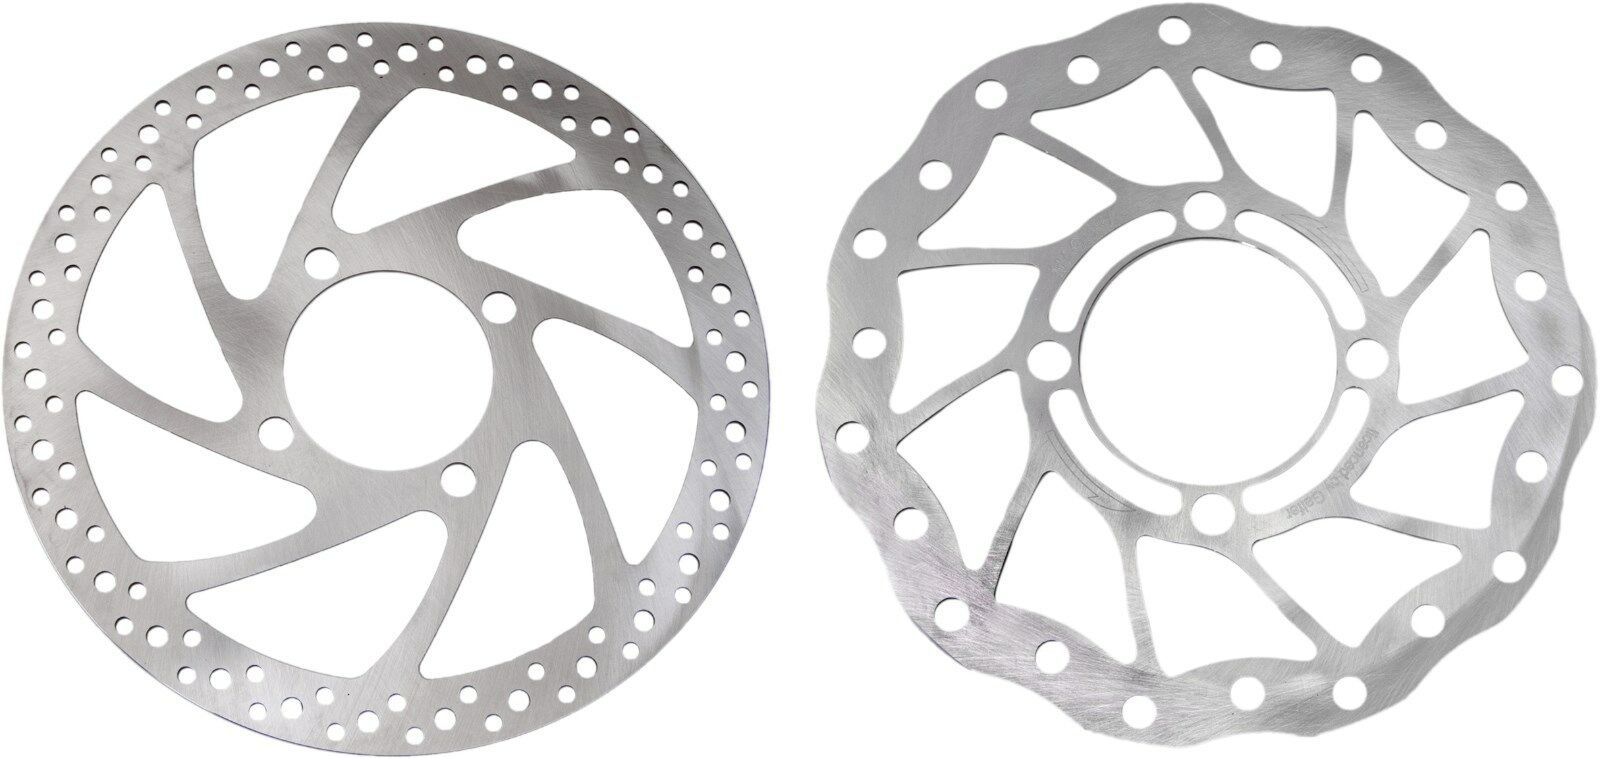 Original Rohloff Brake Disc  in Various Sizes and Designs  fantastic quality